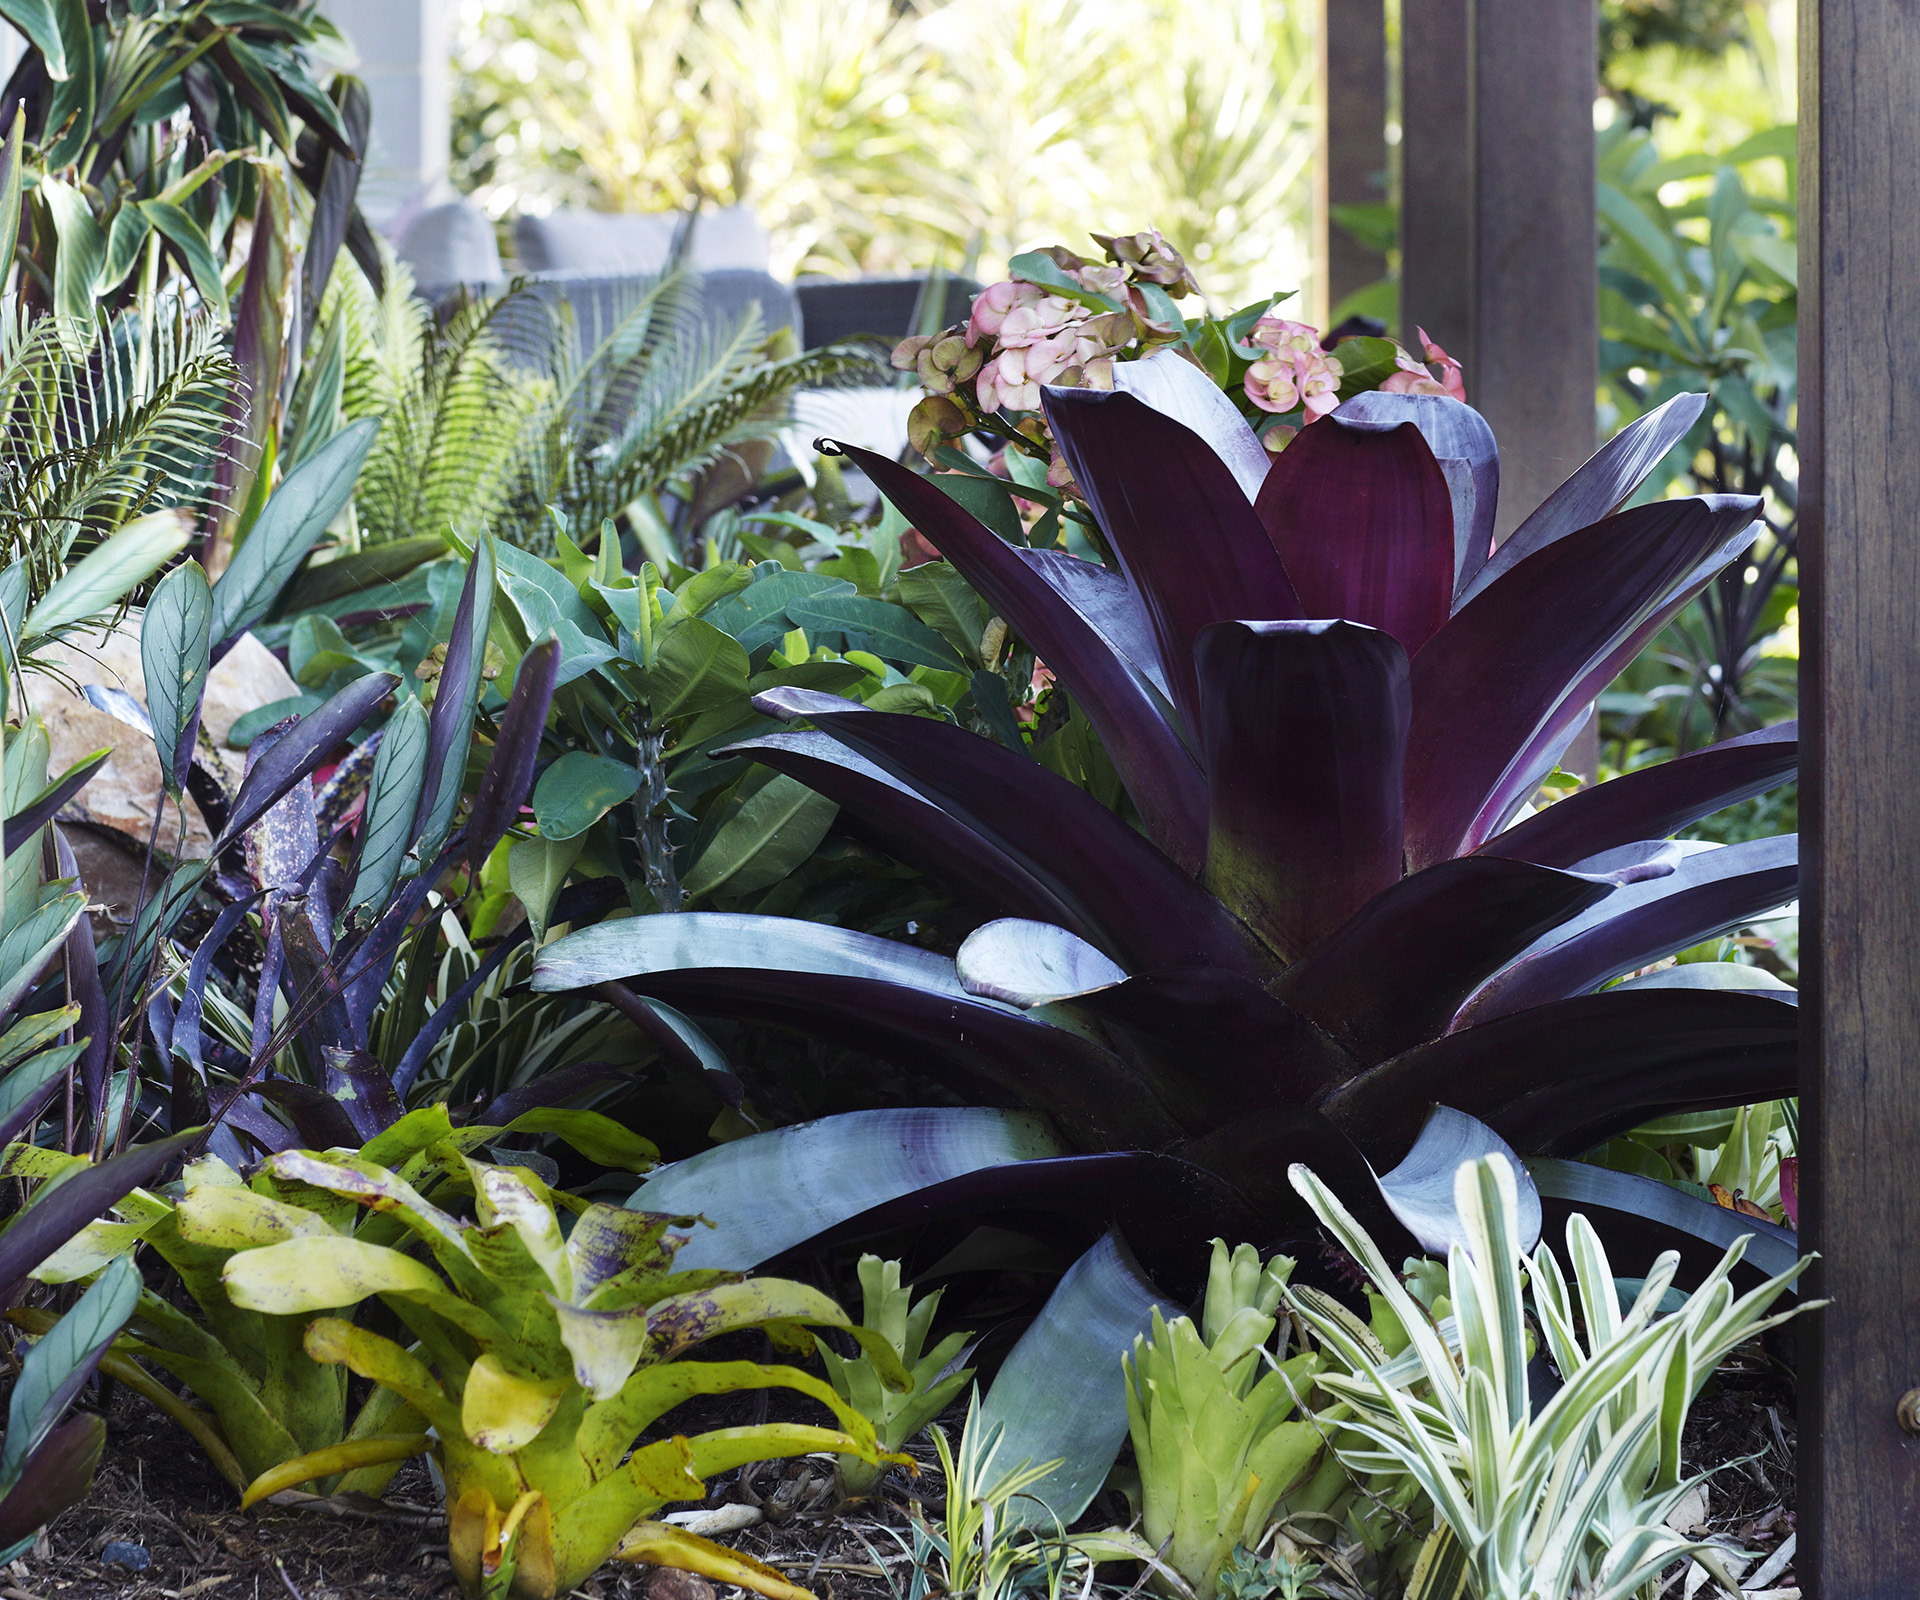 Bromeliads: tips for growing indoors, outdoors and in pots